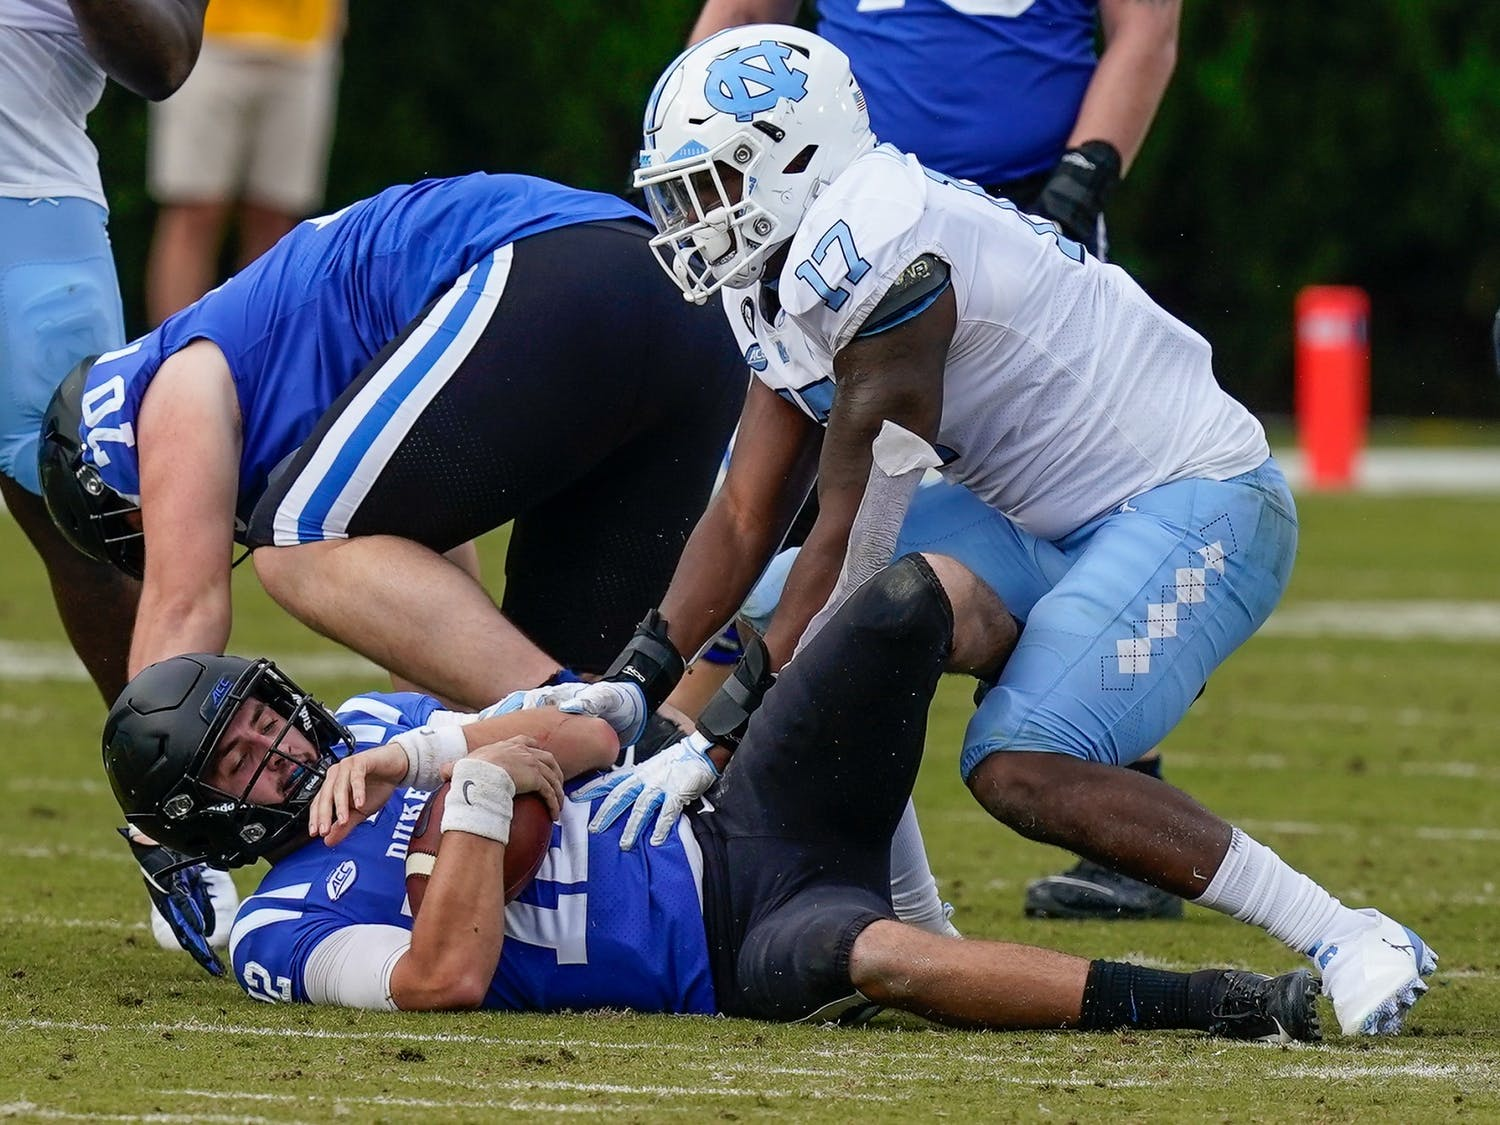 Pass protection was one of many problems Duke had on Saturday, giving up five sacks on the afternoon.